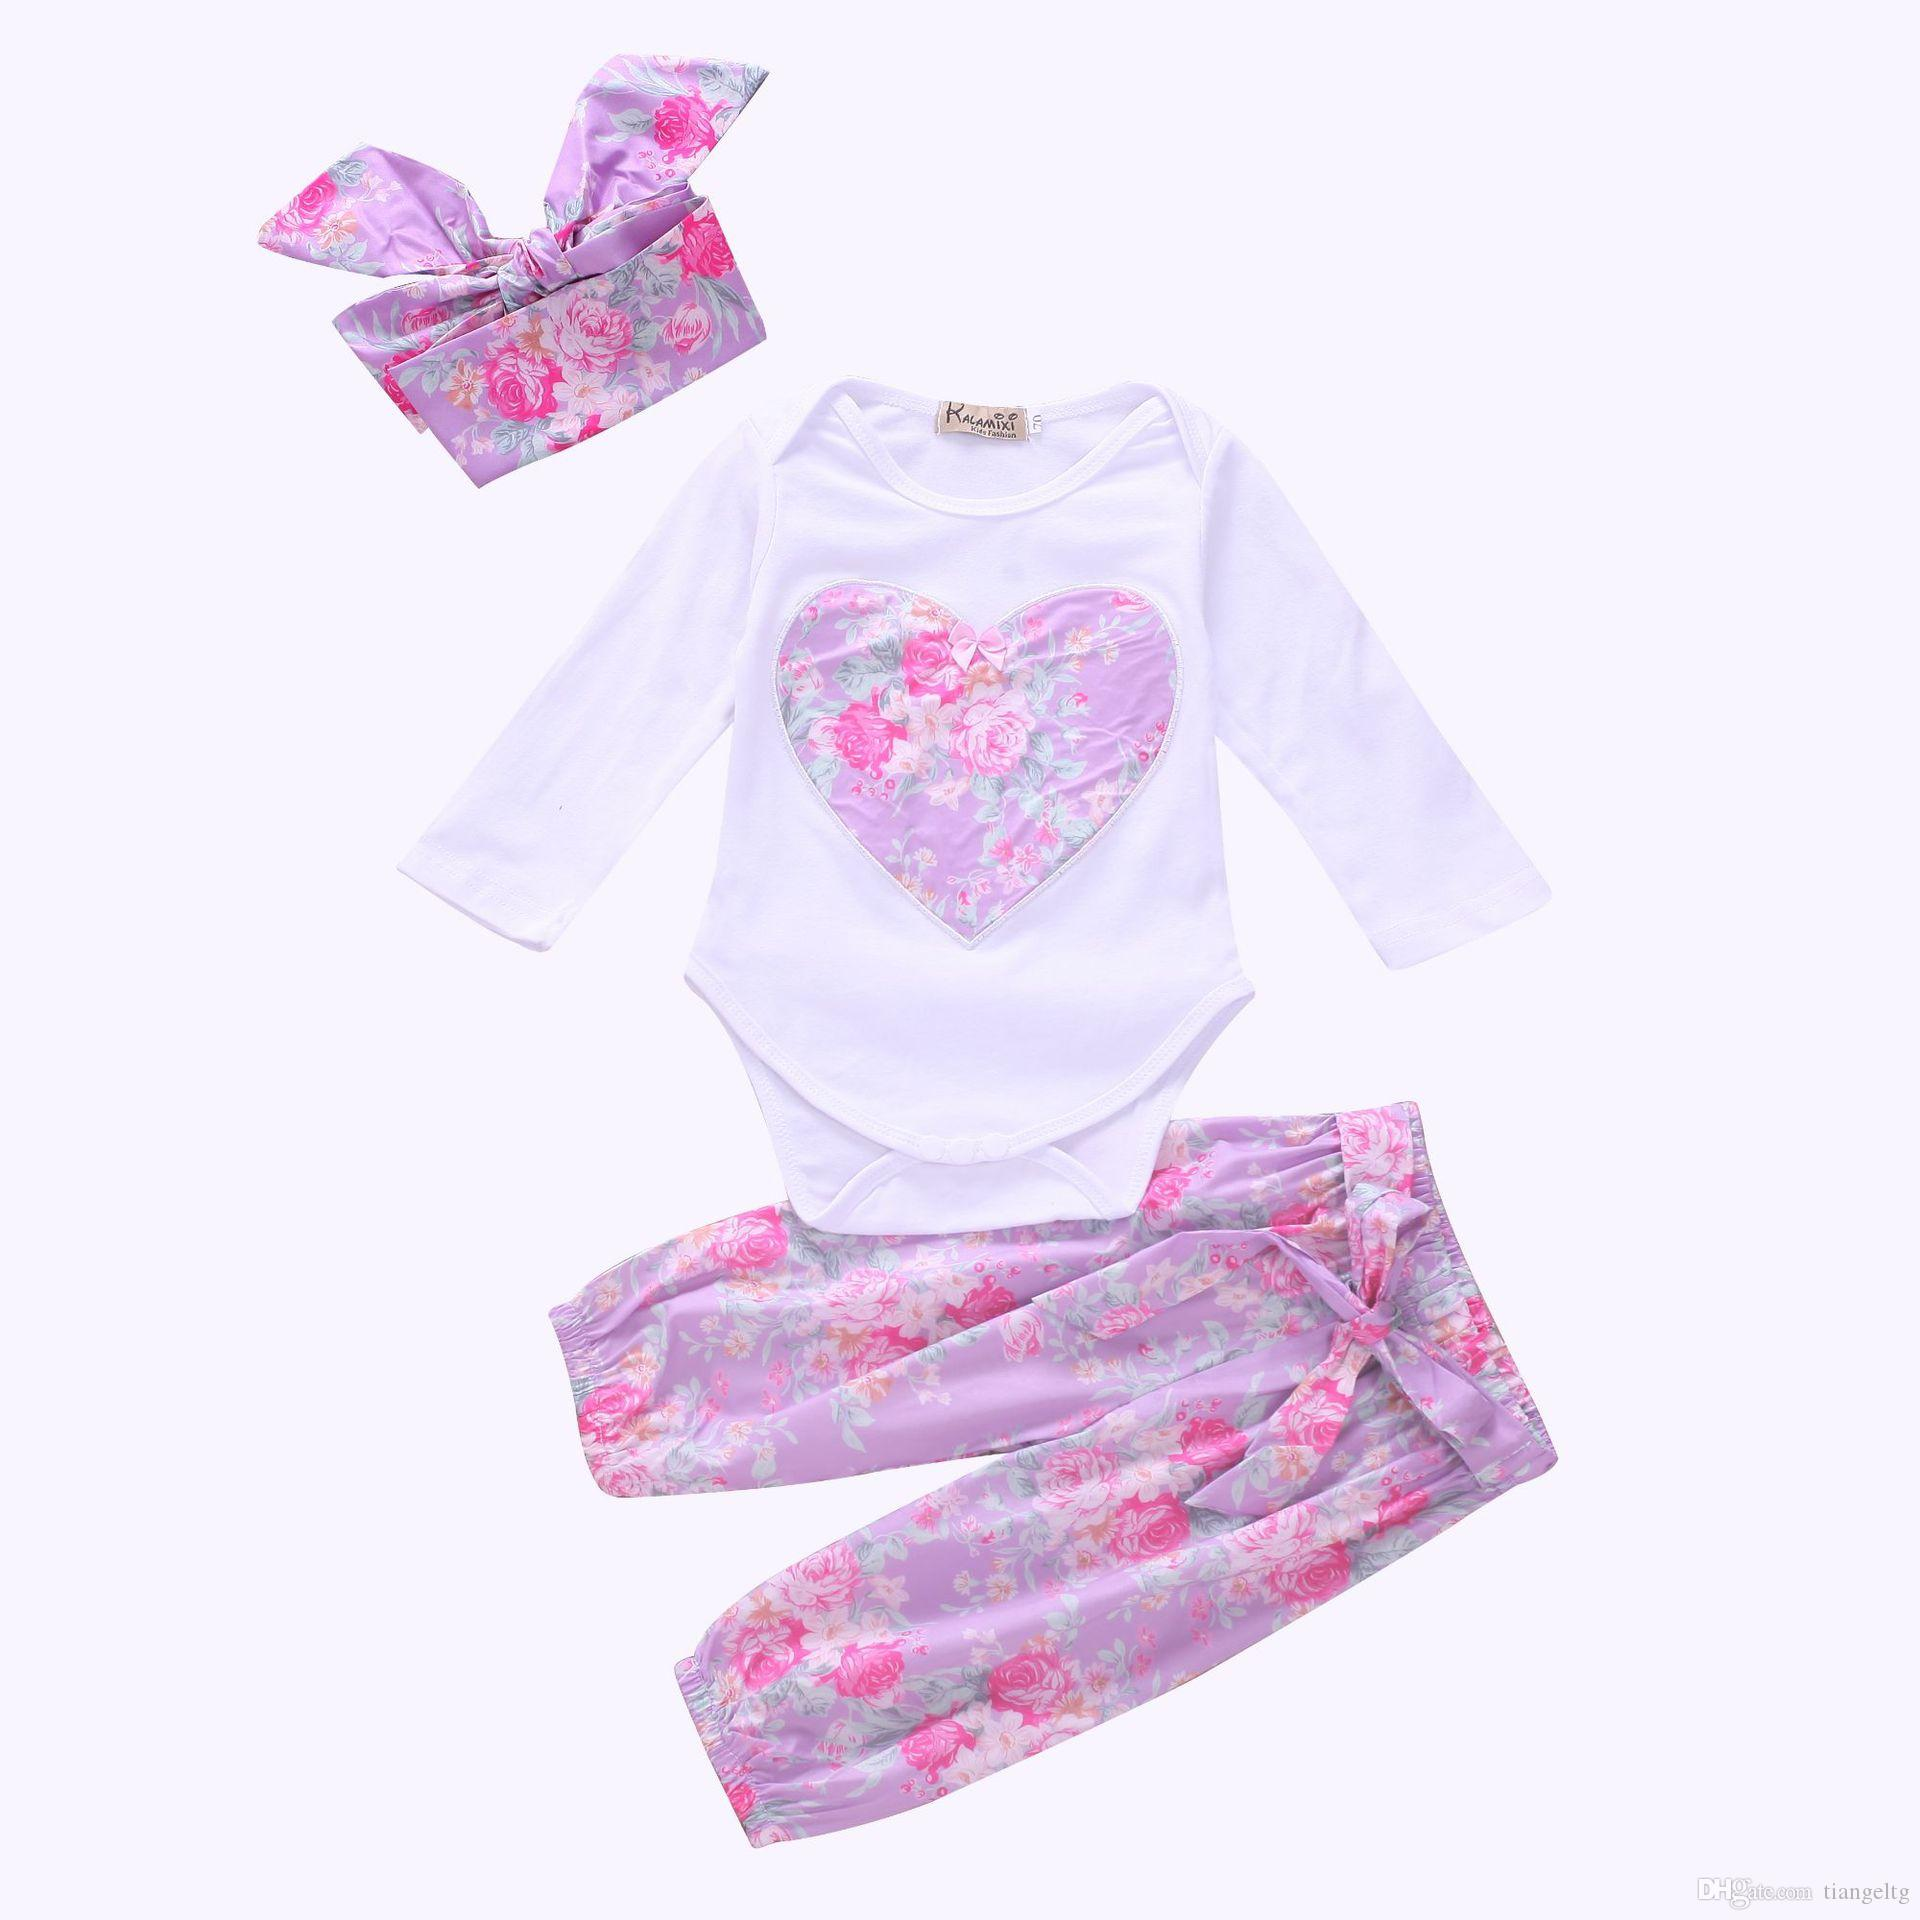 2fab671f313 2019 Girls Purple Heart Three Piece Clothing Sets Floral Romper Hairband  Pants Baby Girls Autumn Suit 100% Cotton 0 24M From Tiangeltg